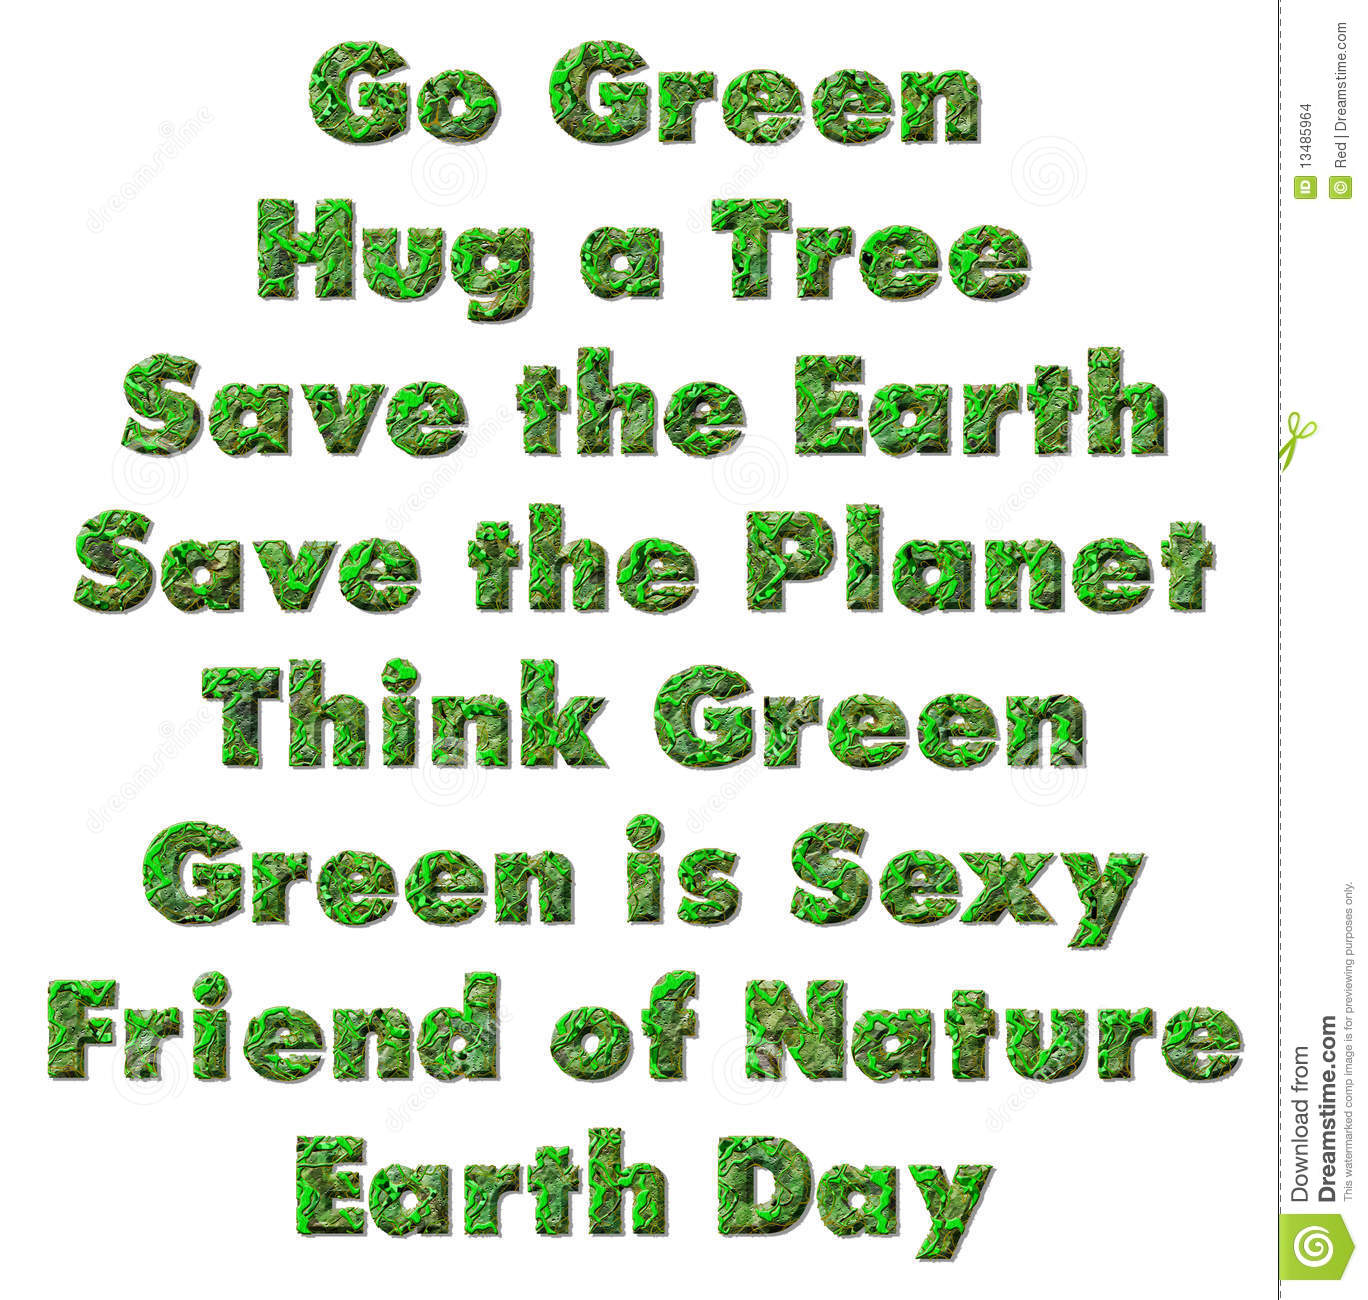 Earth Day. Environmental slogans, sayings and phrases about the earth